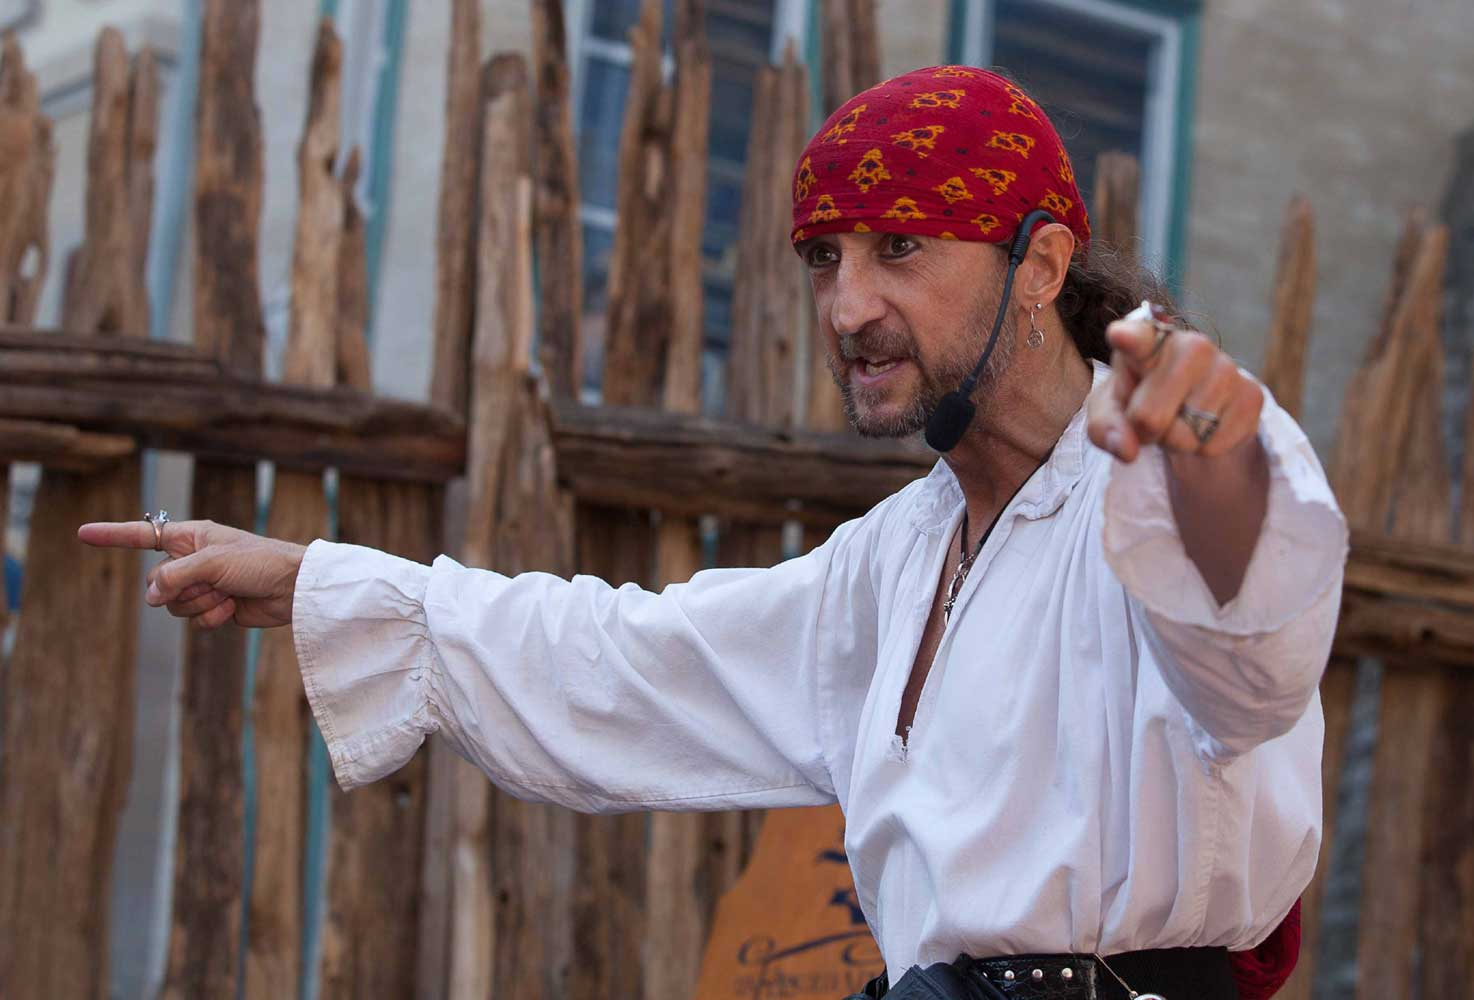 Spectacle pirate du Capitaine Loran